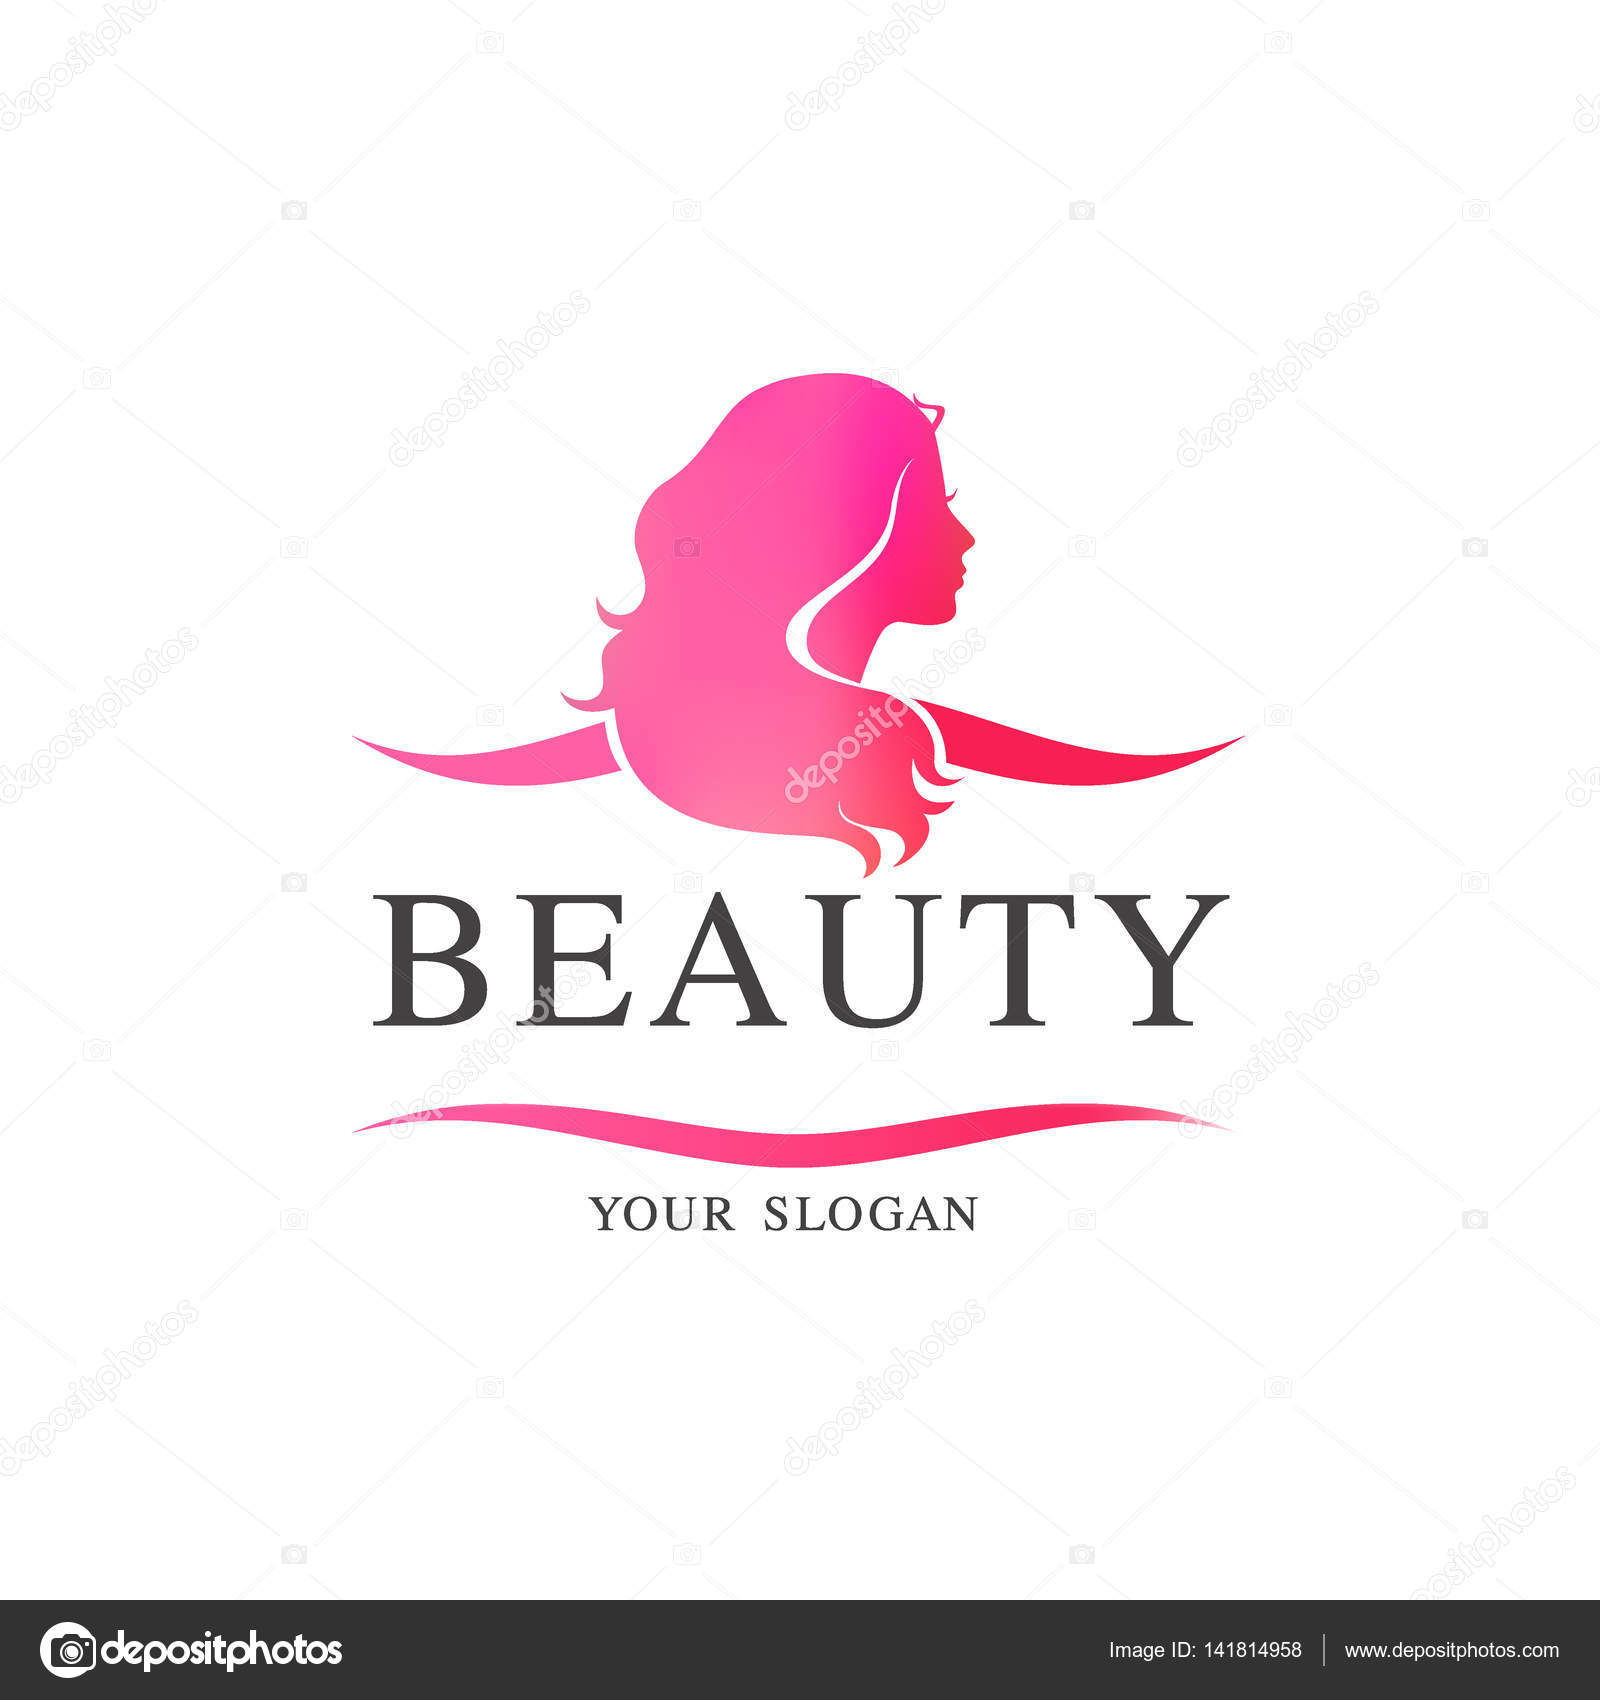 depositphotos_141814958-stock-illustration-beauty-salon-vector-logo-template.jpg